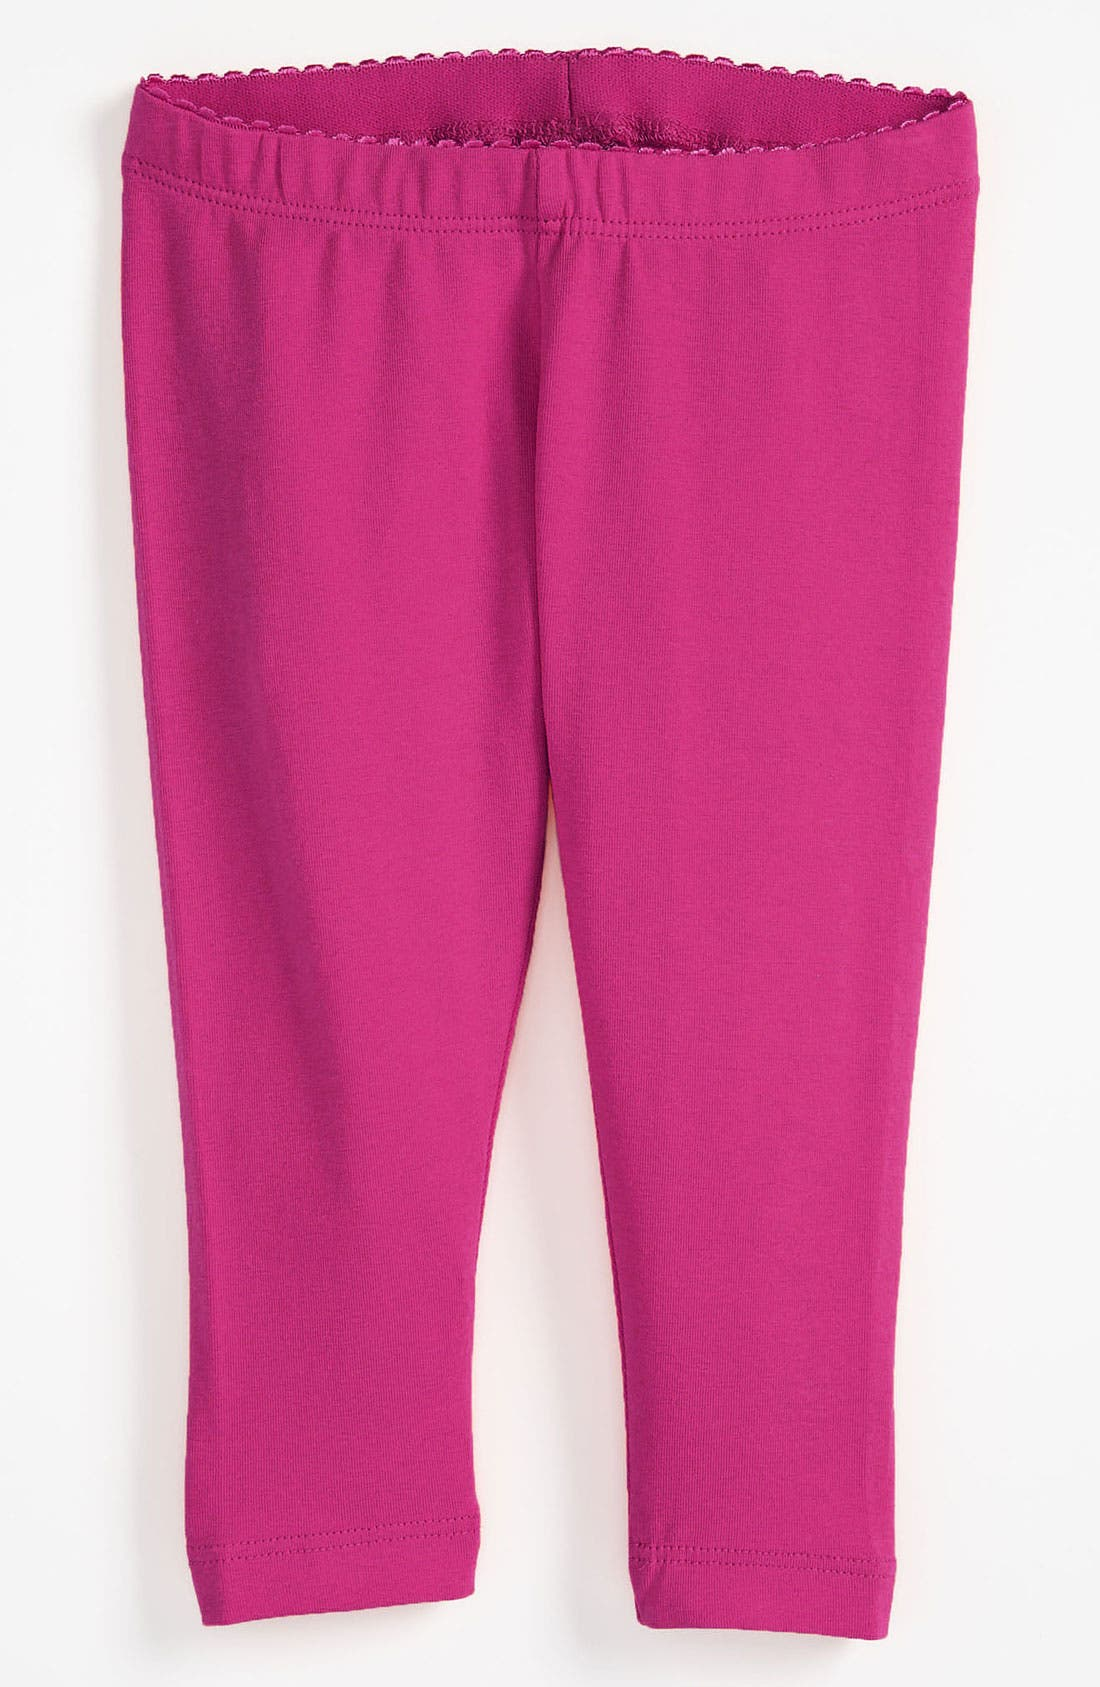 Alternate Image 1 Selected - Tea Collection Skinny Stretch Leggings (Toddler)